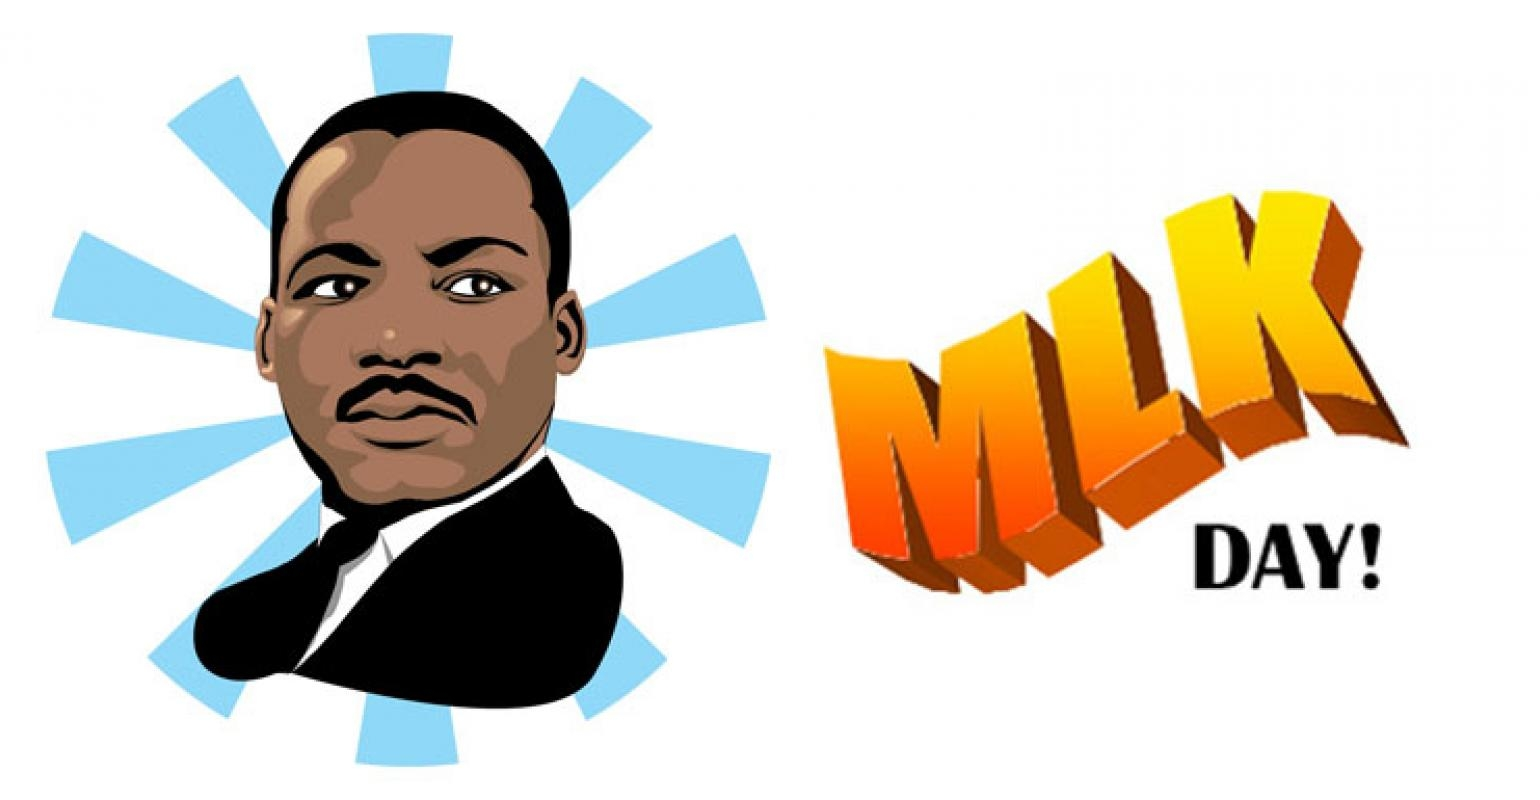 Mlk clipart Inspirational Martin Luther King Jr Day Camp A Game.